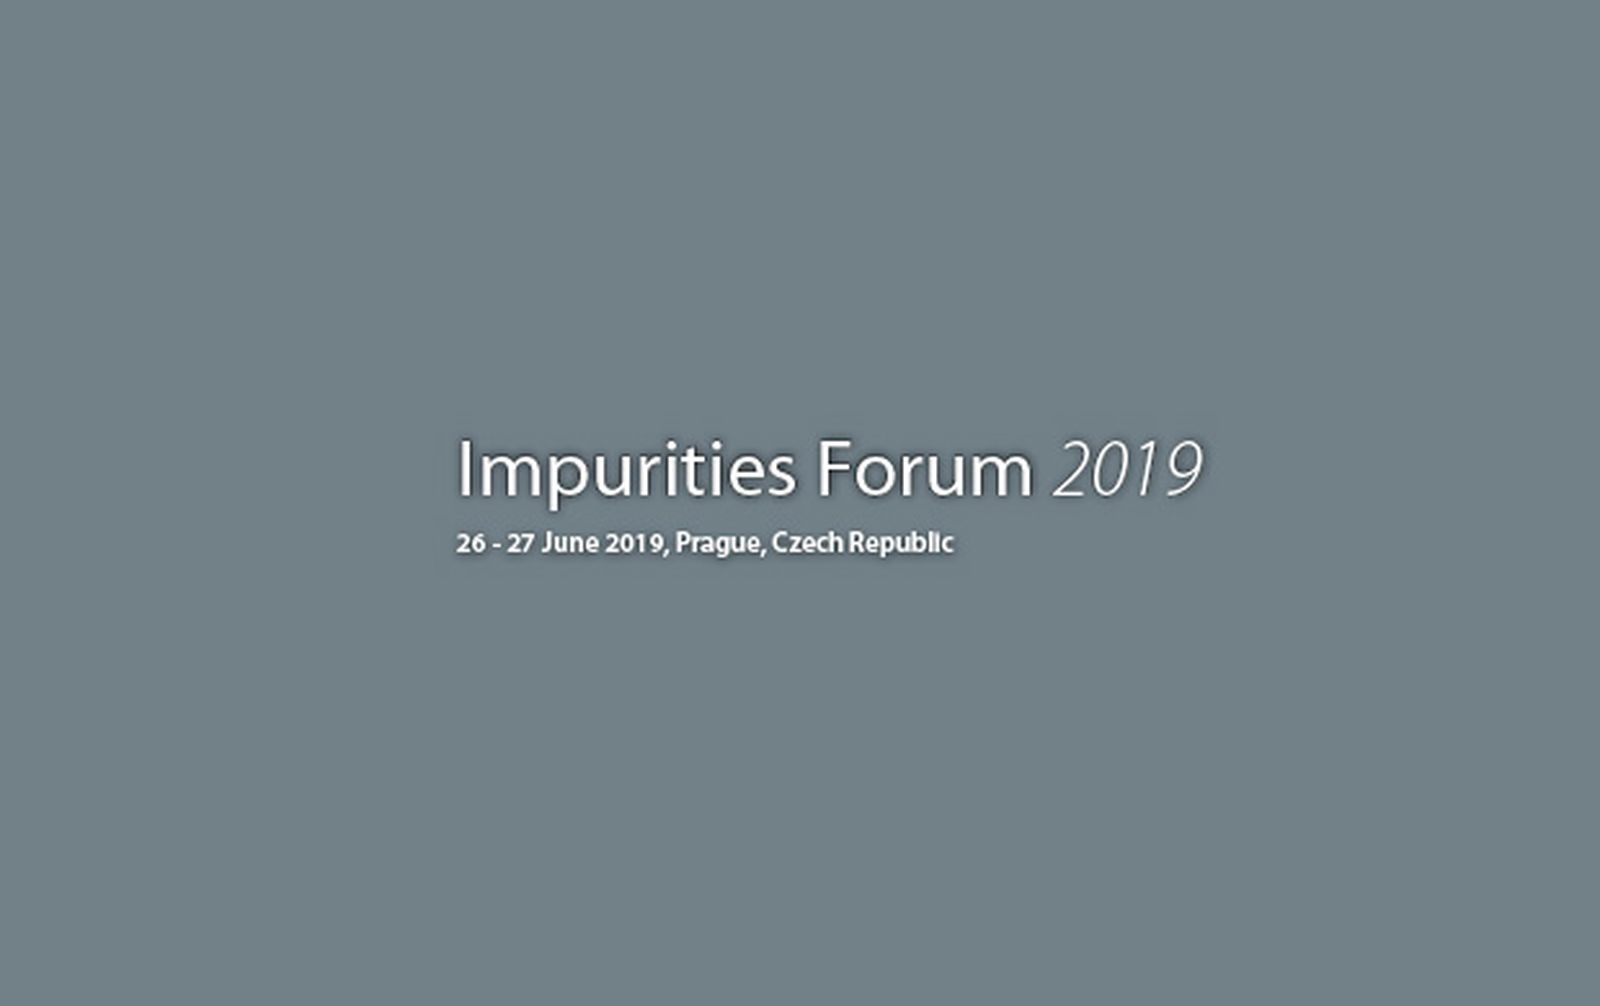 Dr. Xaver Schratt from GBA Pharma Labs speaking at Impurities Forum 2019.